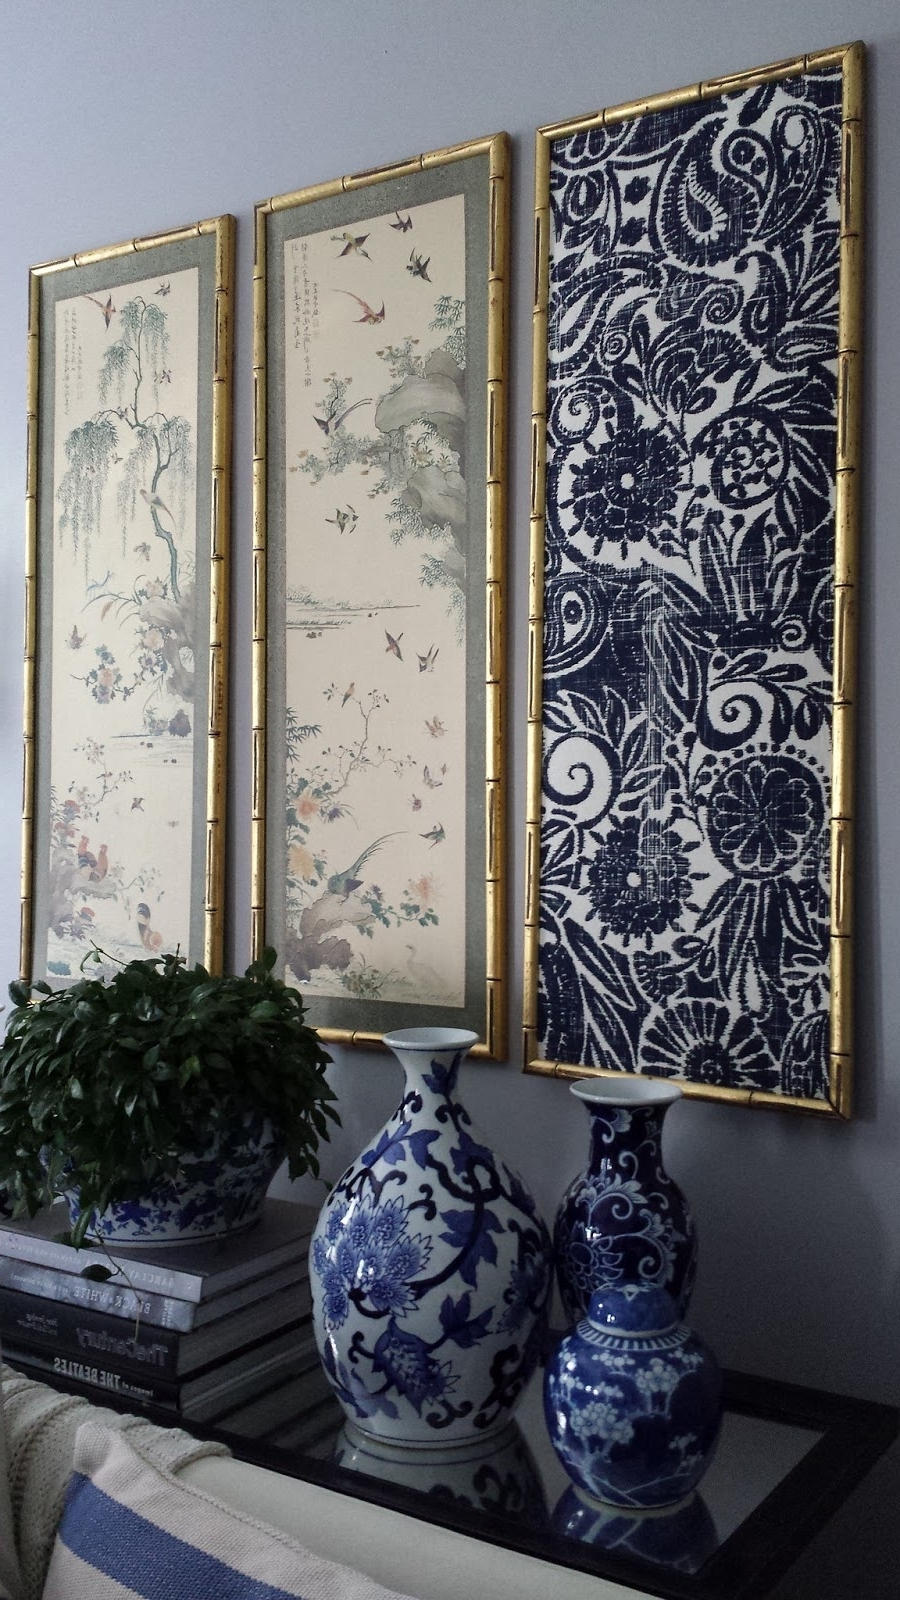 Focal Point Styling: Diy Indigo Wall Art With Framed Fabric With Regard To Popular Diy Framed Fabric Wall Art (View 7 of 15)